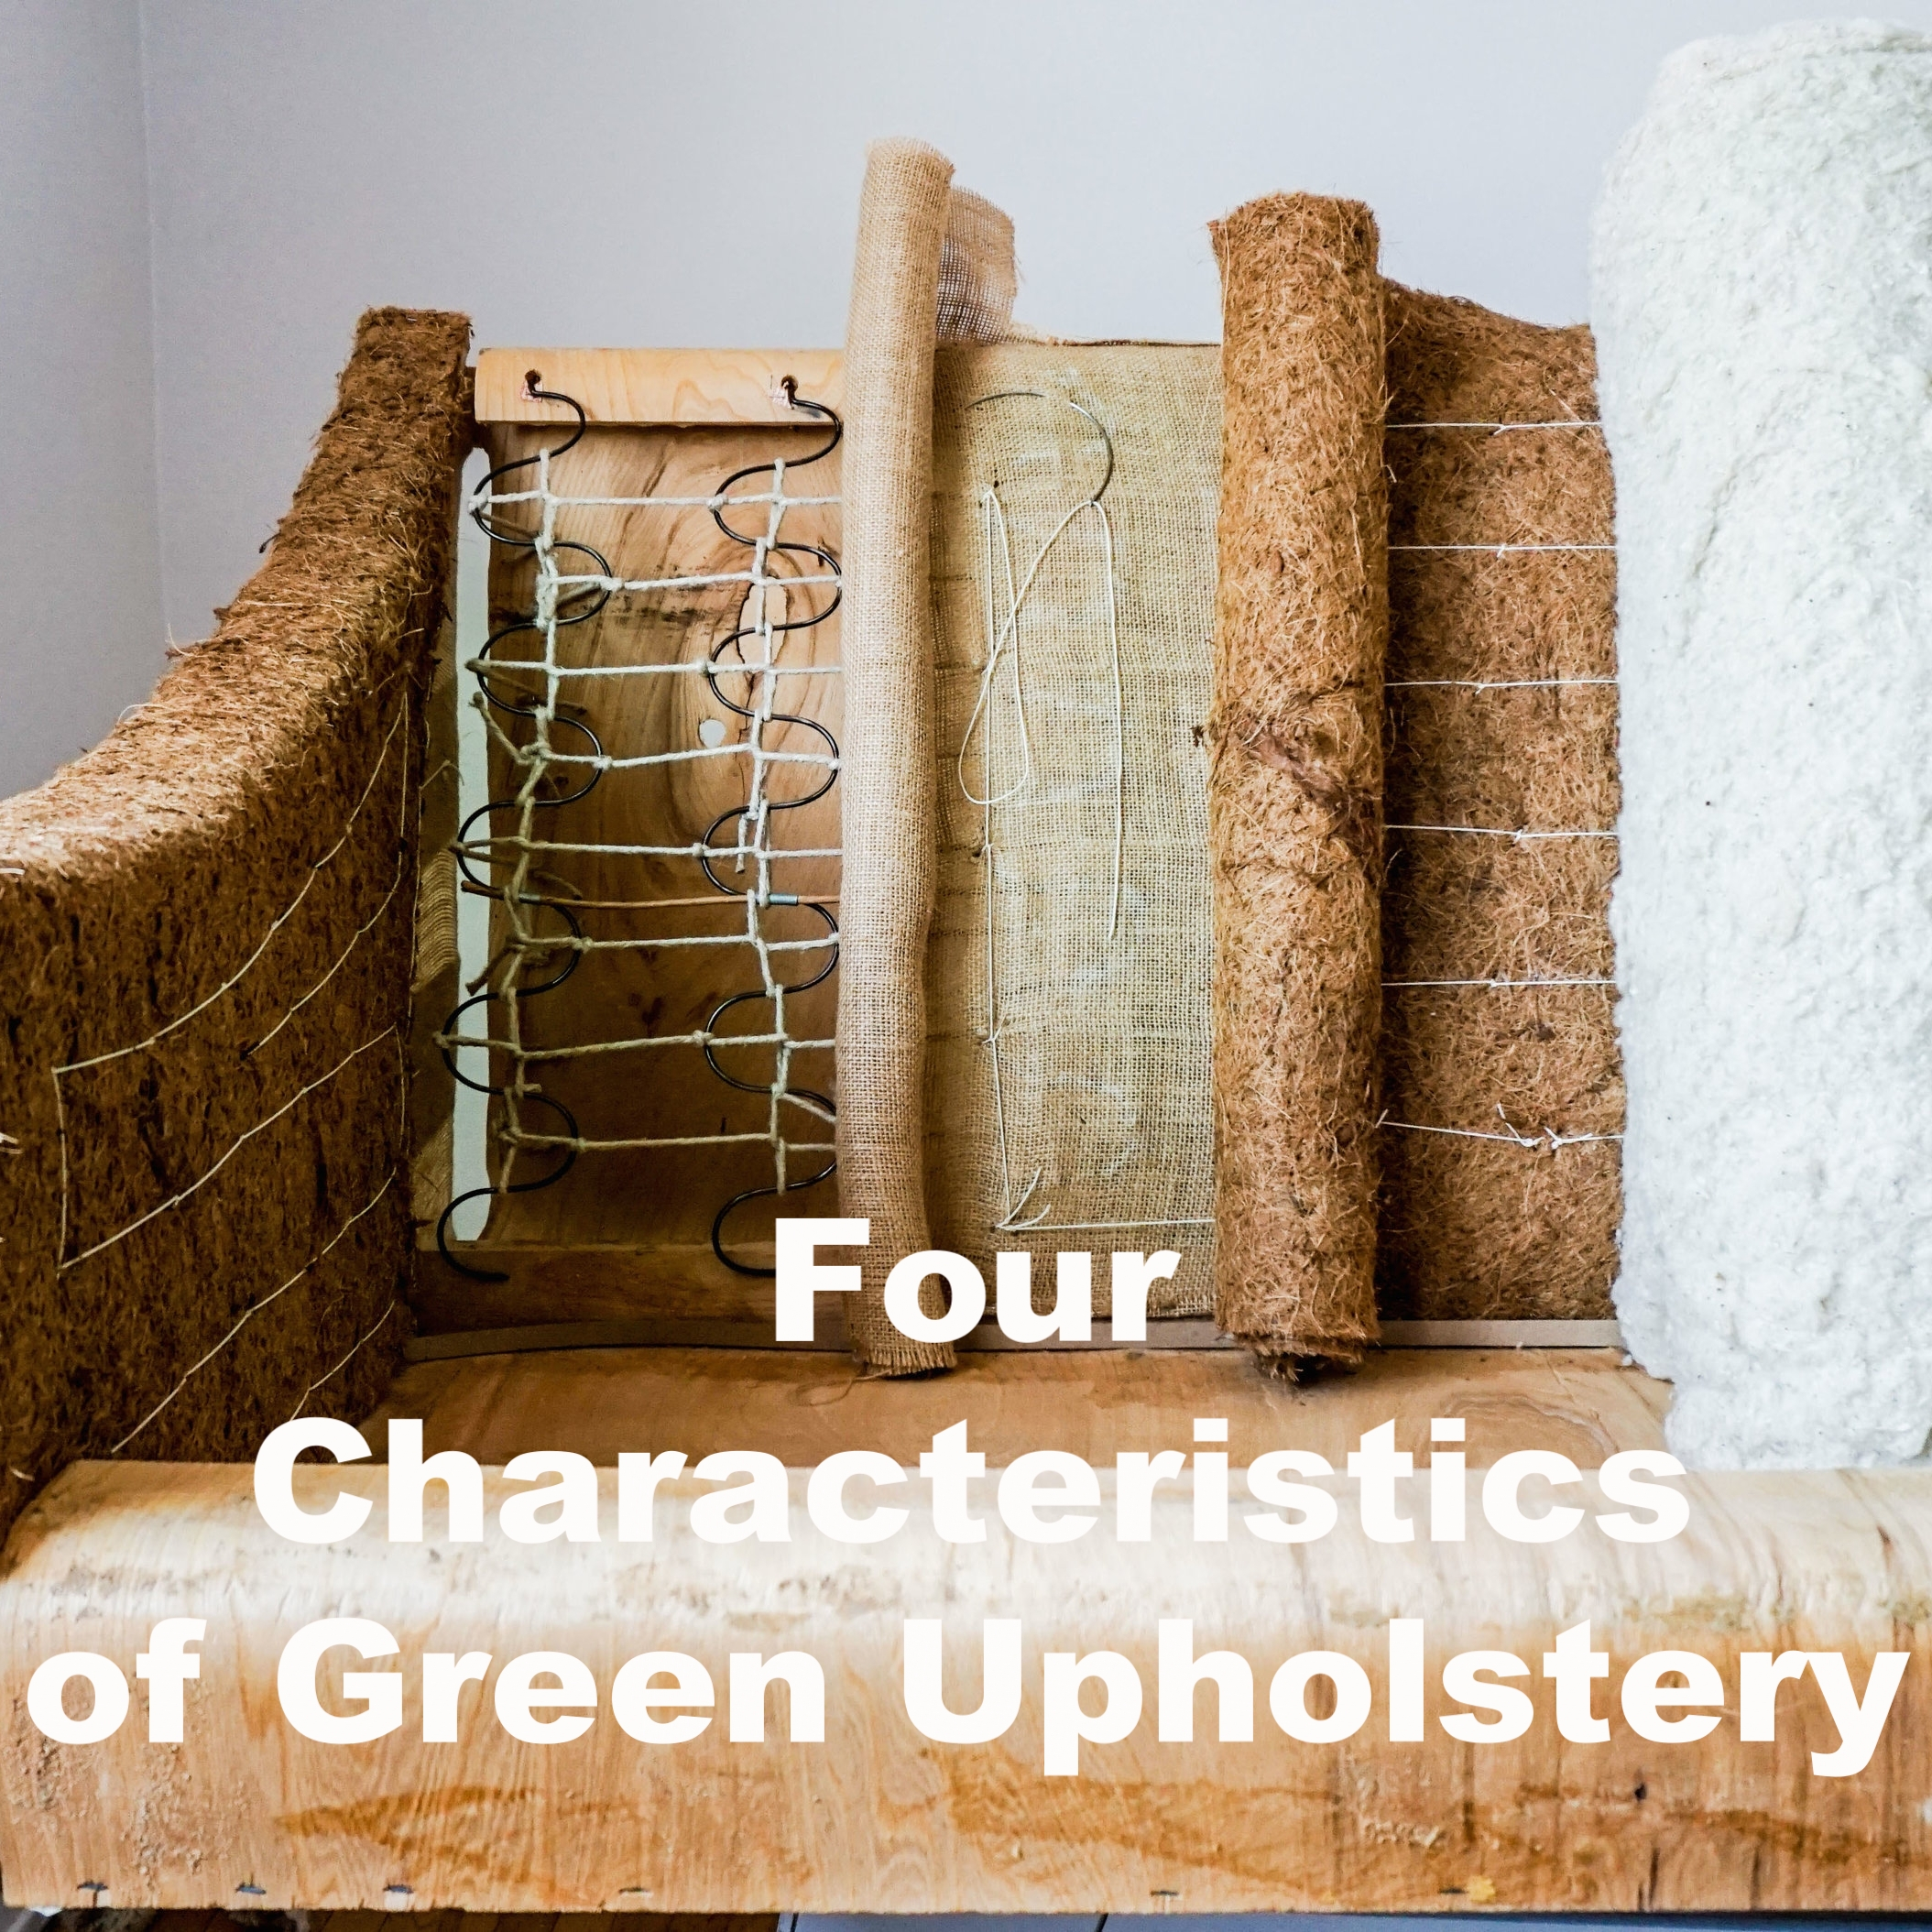 CLICK THROUGH BLOG: What to look for in green upholstery.